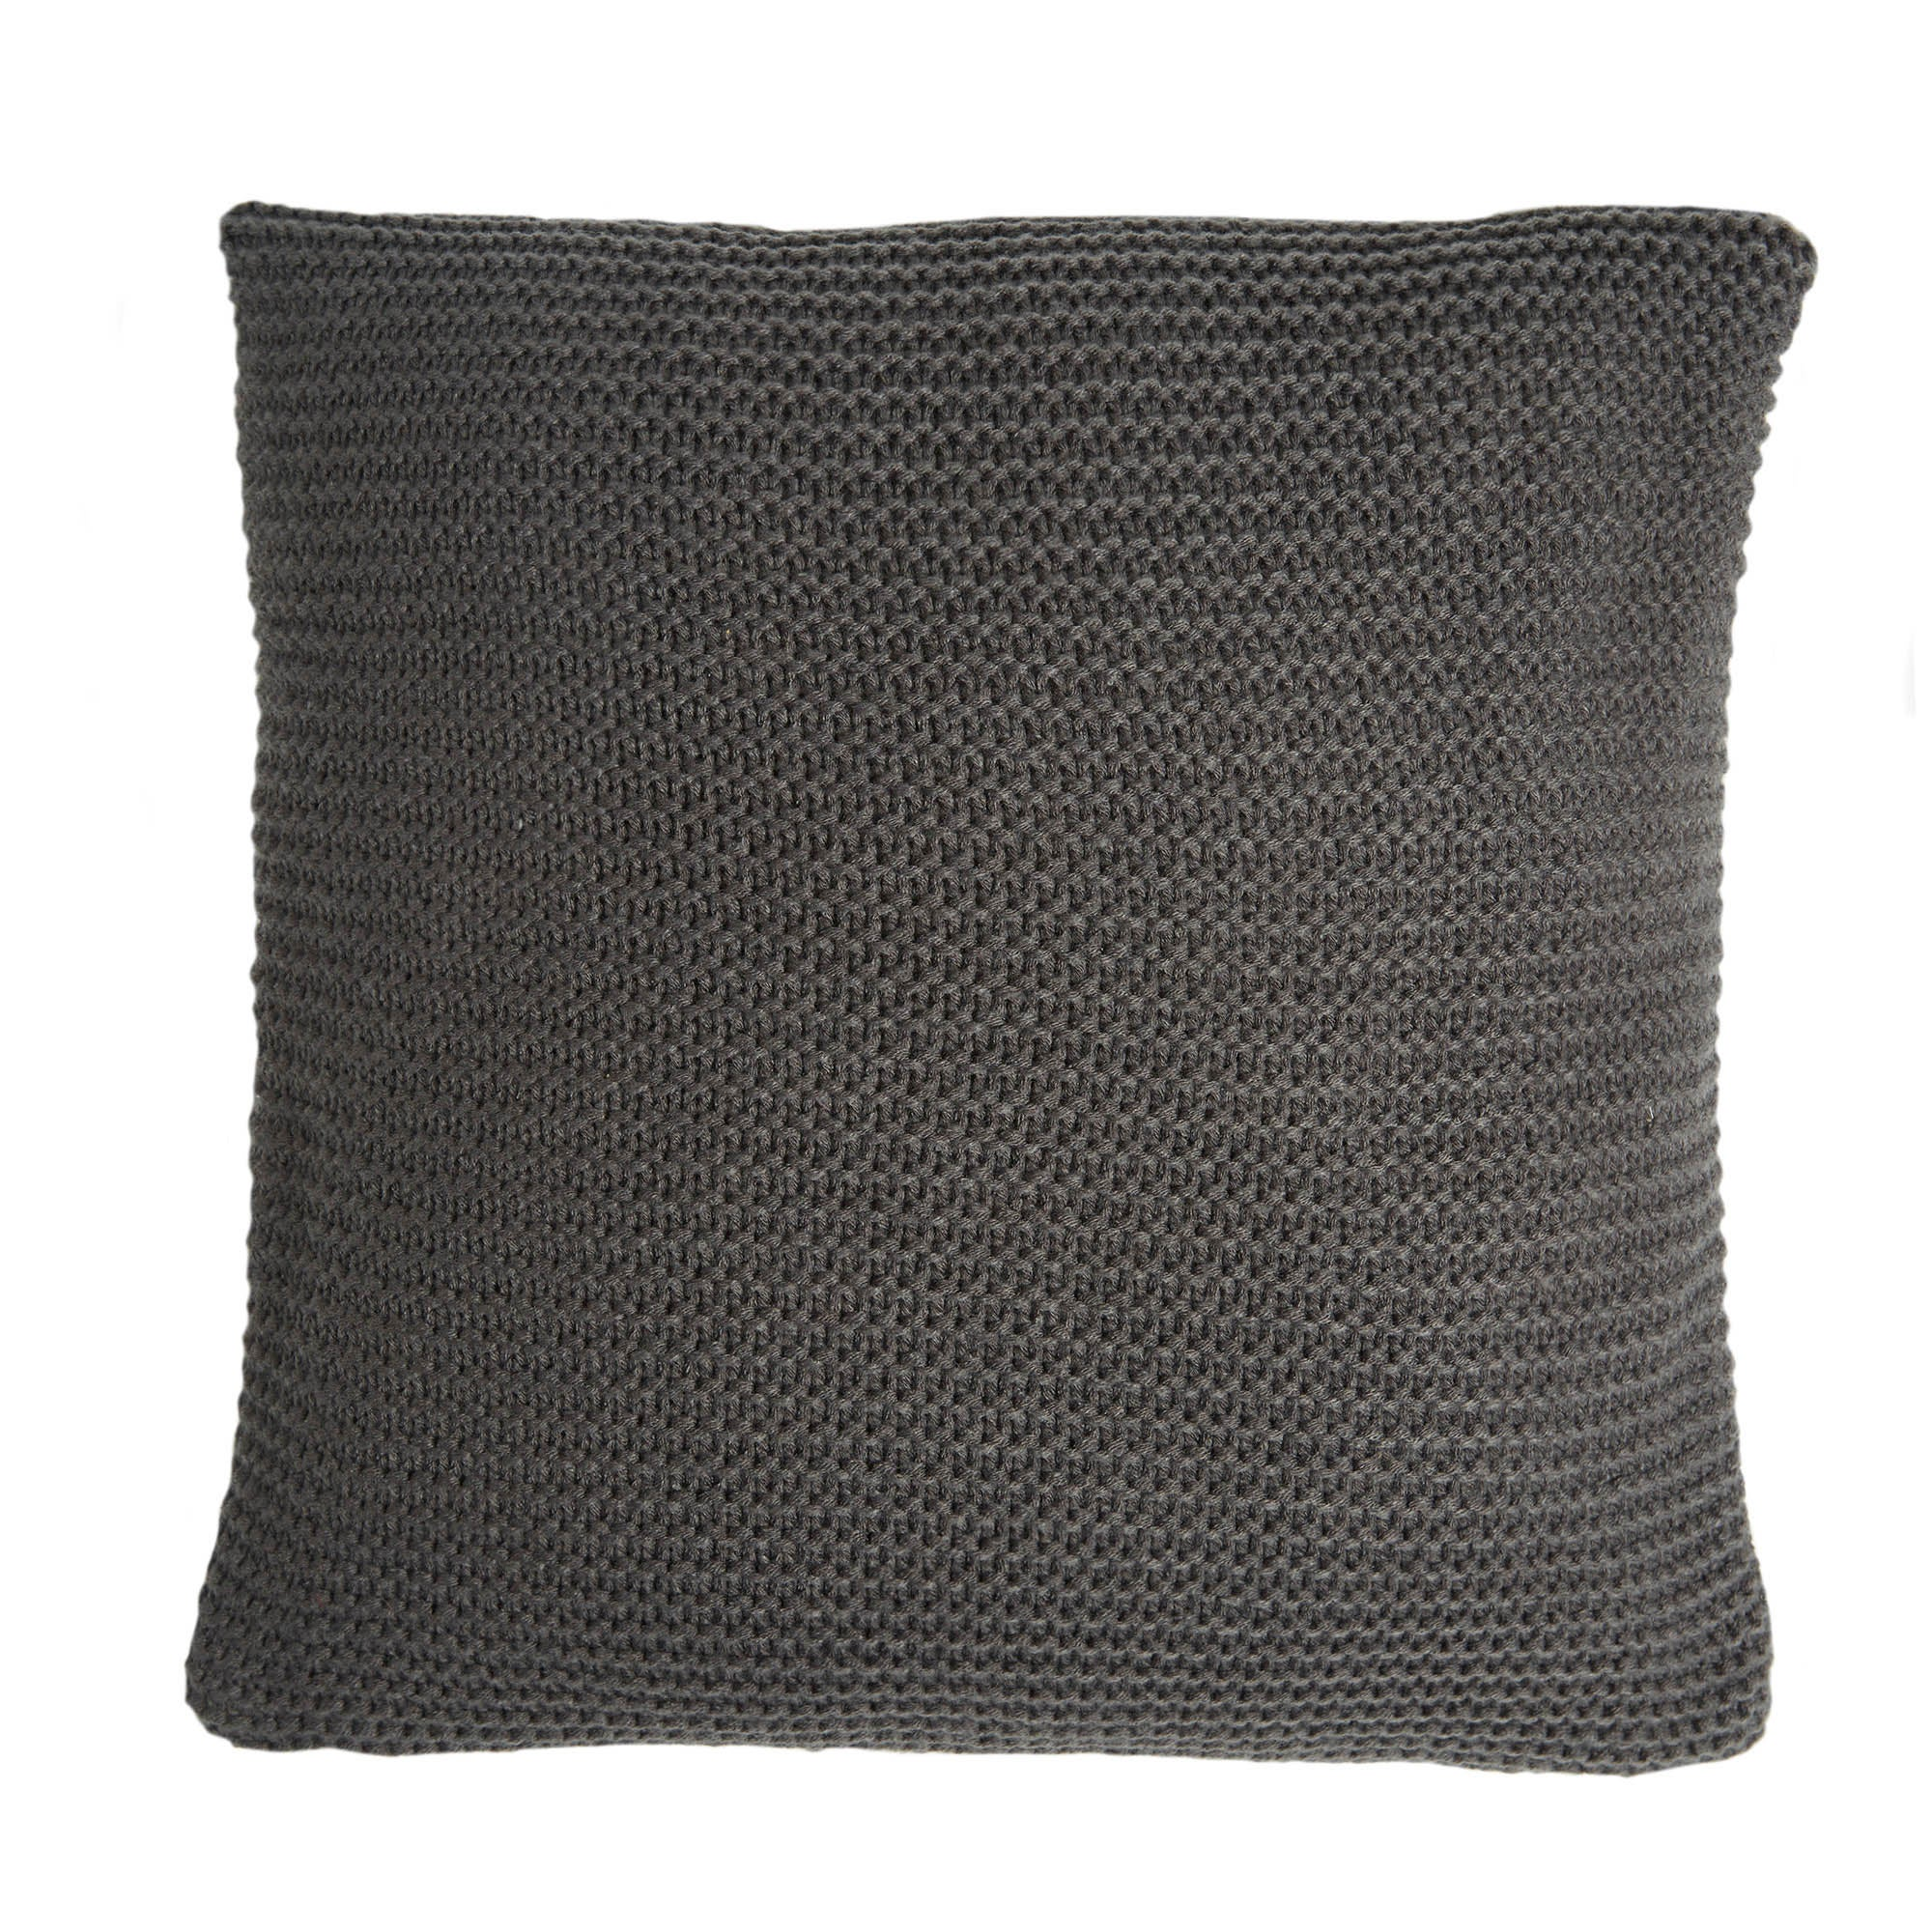 Click to view product details and reviews for Breckon Charcoal Cushion Charcoal.